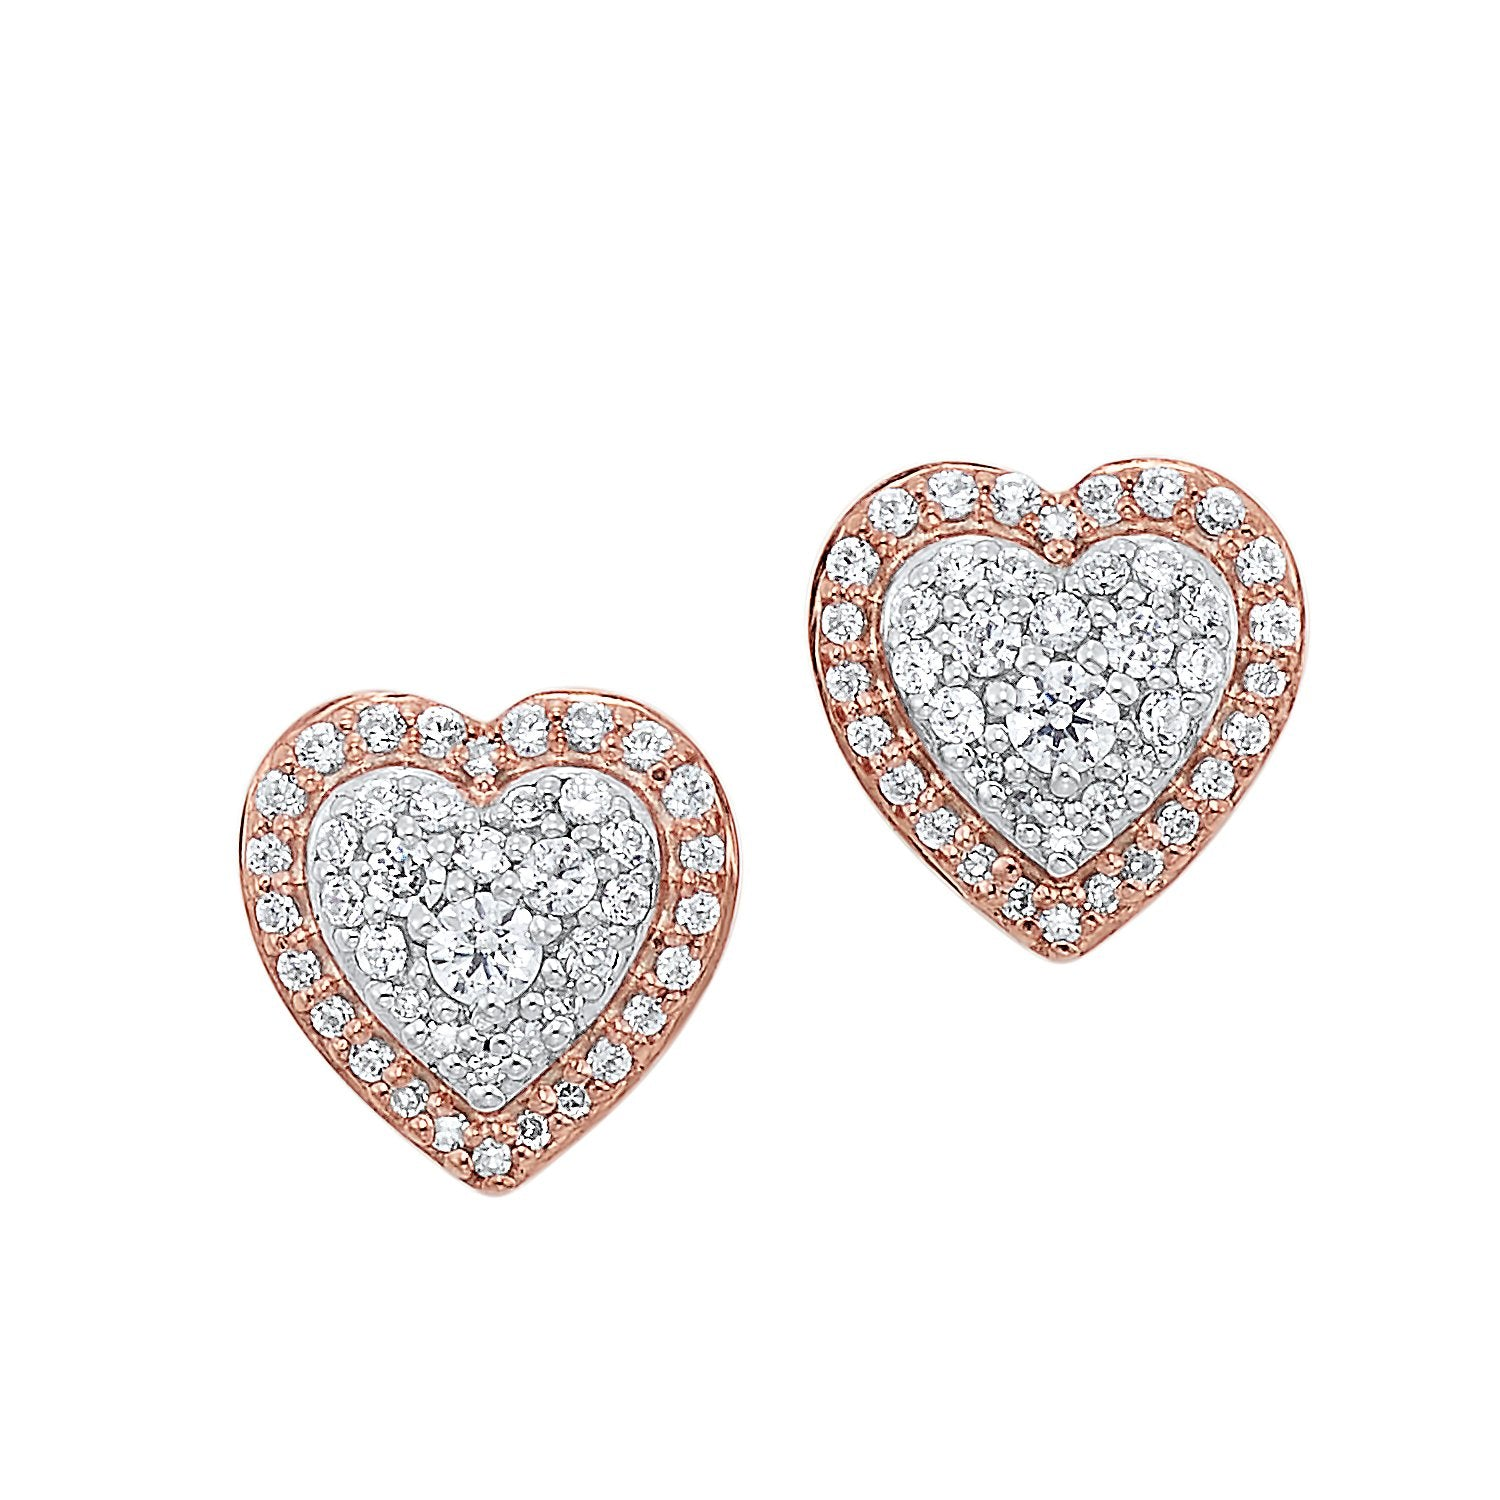 14KT Rose Gold Diamond Heart Earrings 1/4 Ctw